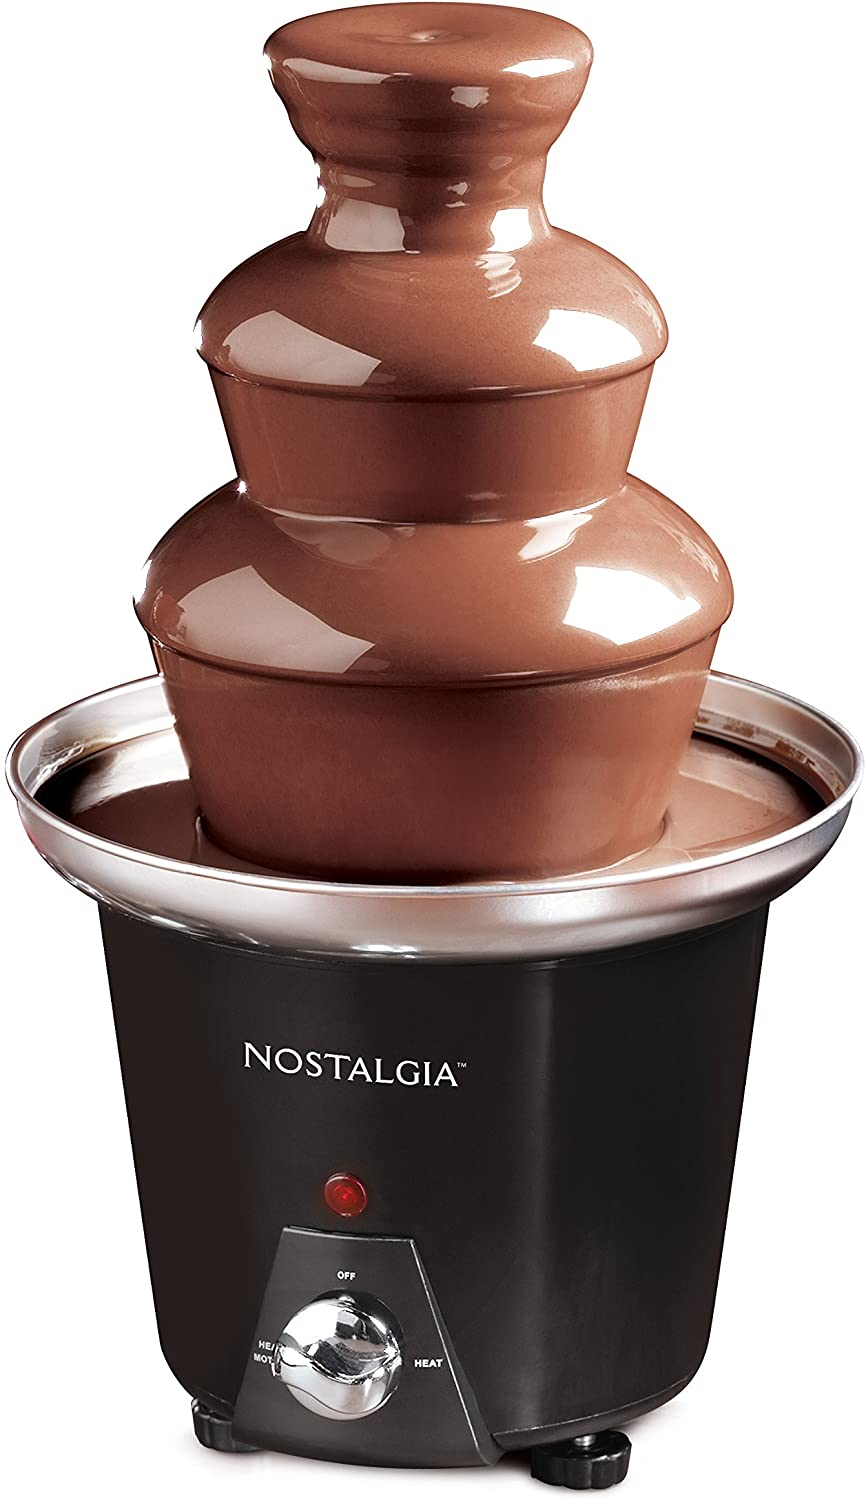 Nostalgia 24 Ounce Chocolate Fondue Fountain 1 5 Pound Capacity Easy To Assemble 3 Tiers Perfect For Nacho Cheese Bbq Sauce Ranch Liqueuers Black Kitchen Small Appliances Kitchen Dining